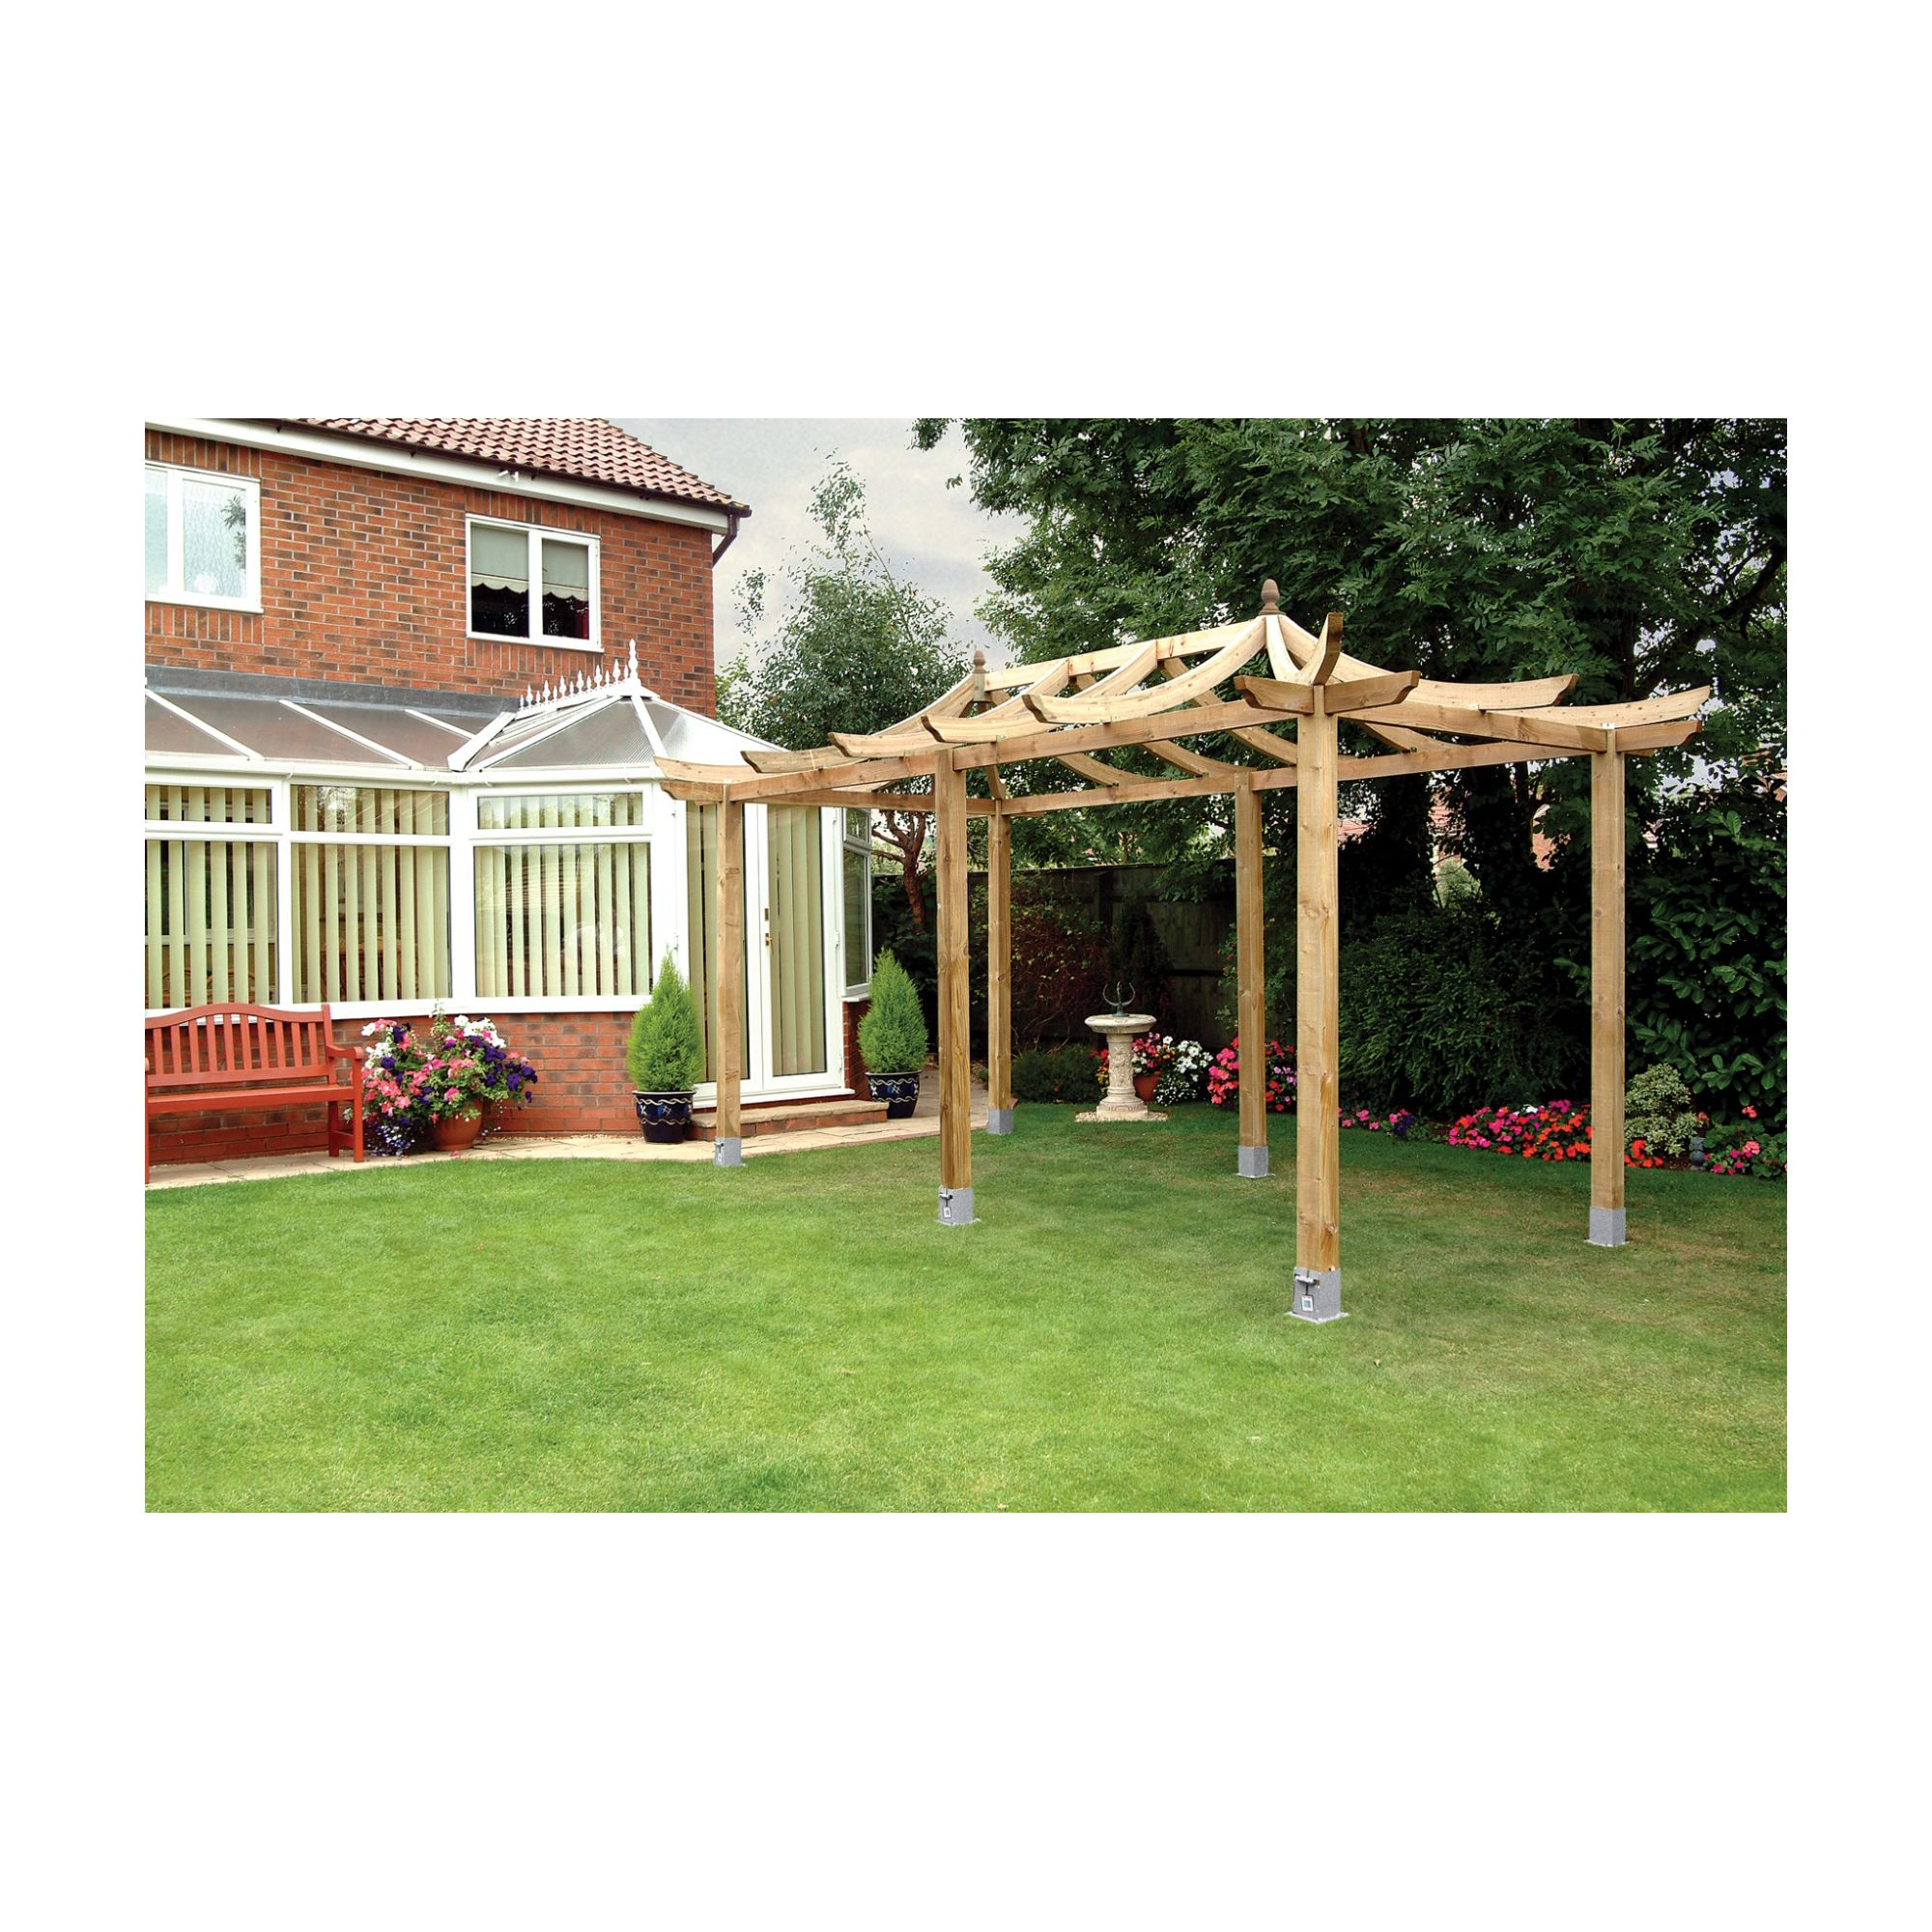 Extended Ashcott Pergola - Includes 6 bags of Metcrete for fixing posts into the ground at Tesco Direct